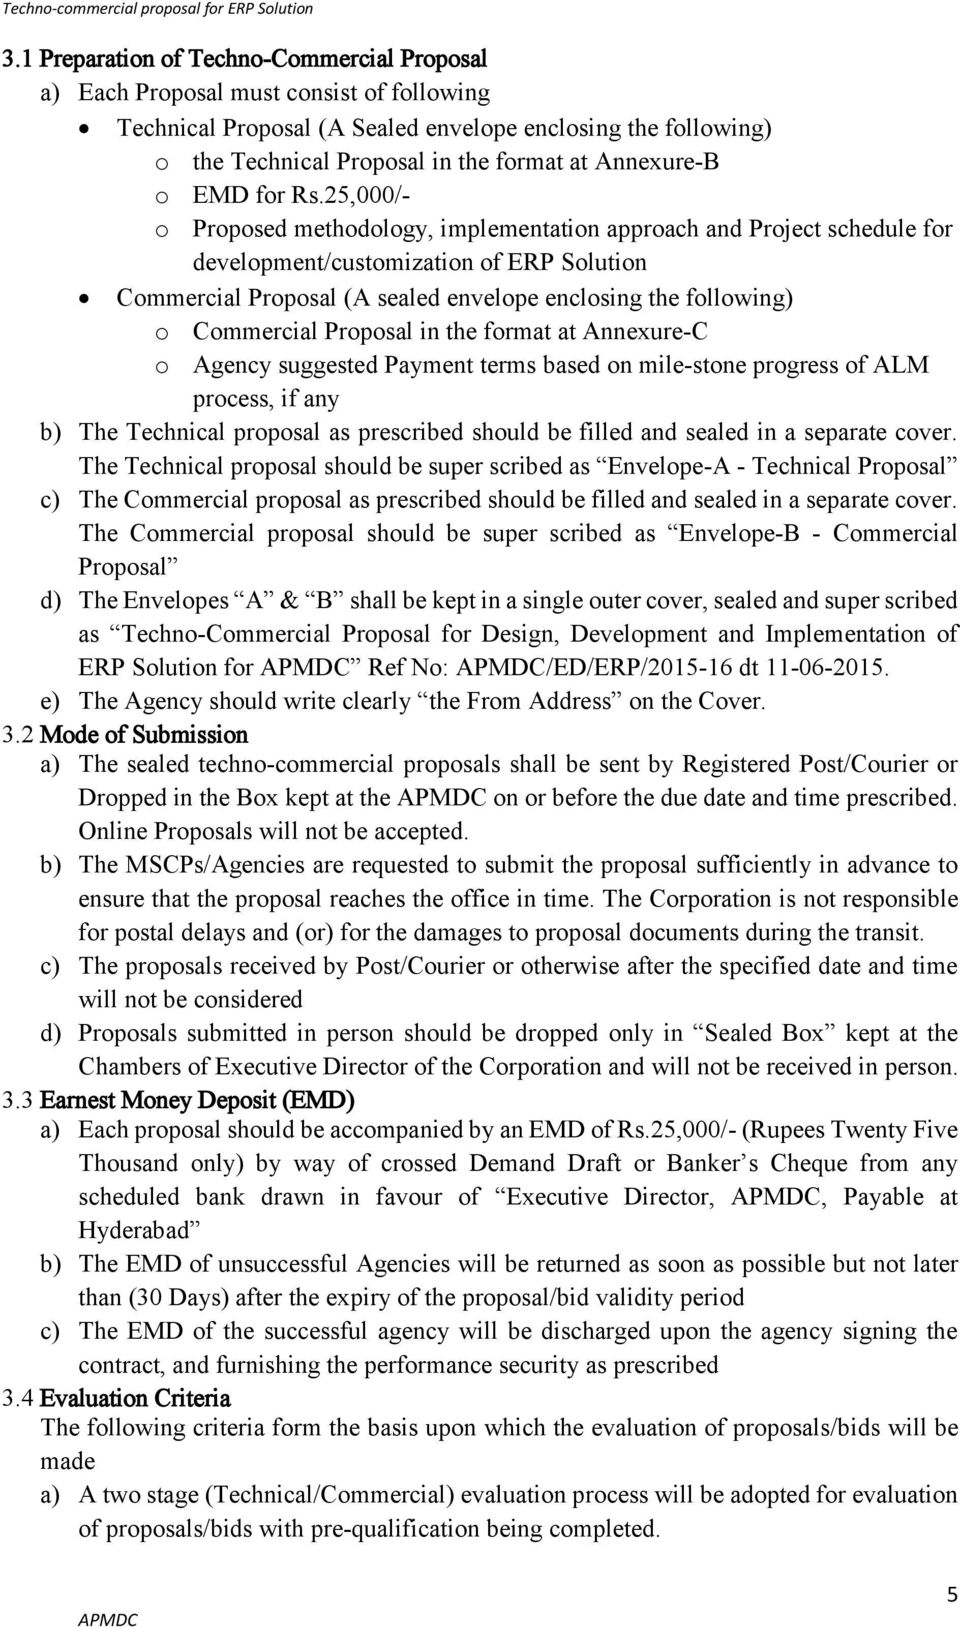 Request For Techno Commercial Proposal Tcp For Design Development Implementation Maintenance Of Erp Solution For Apmdc Pdf Free Download